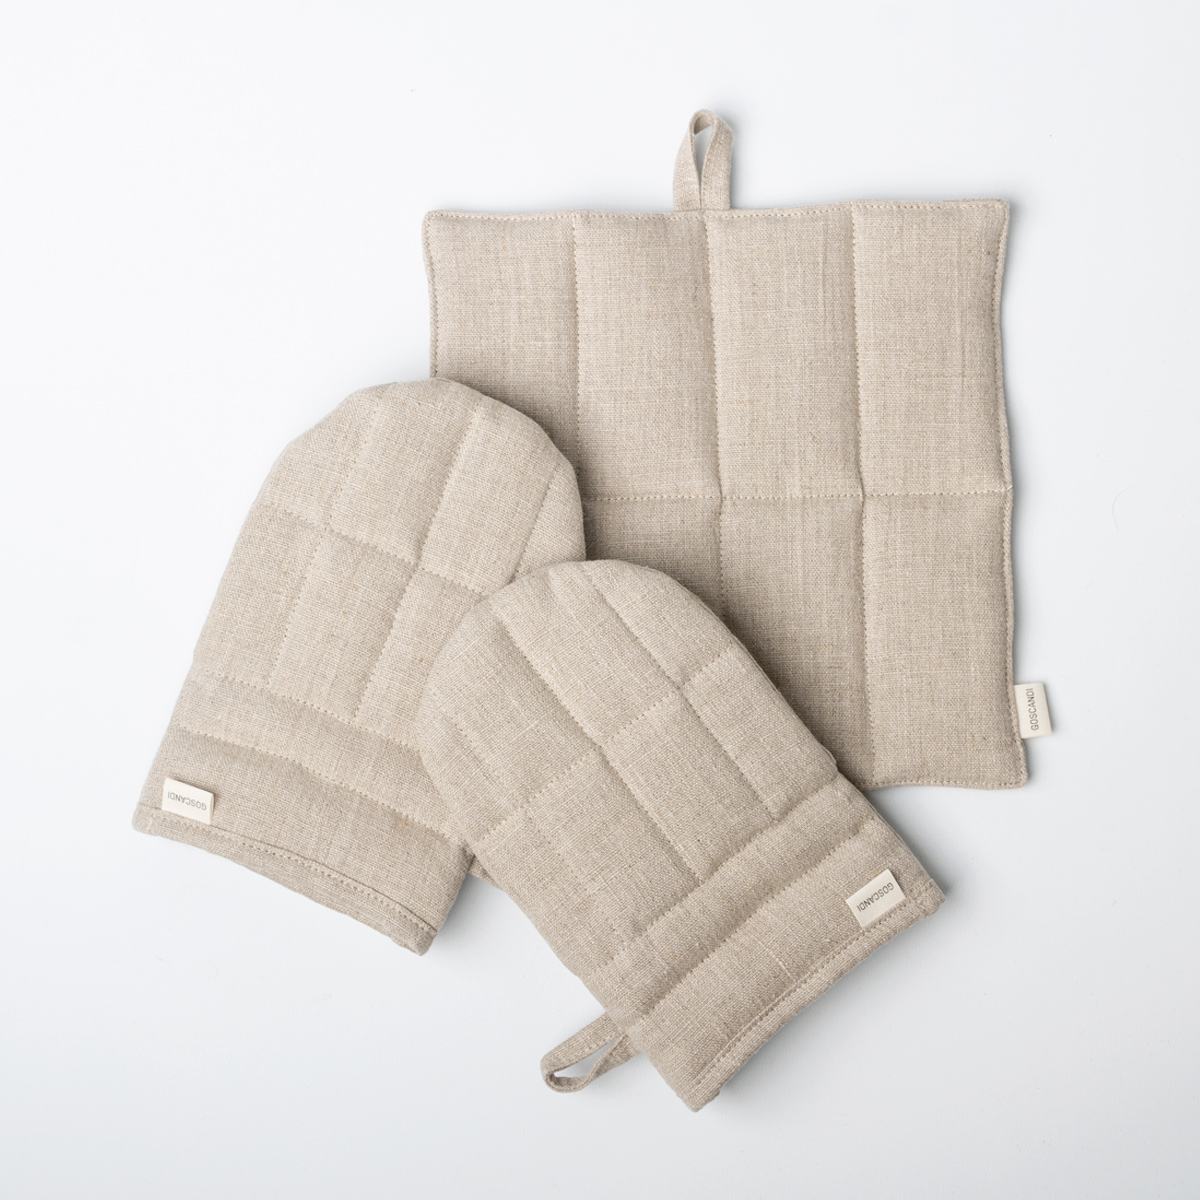 Oven Mitts – Set of 2